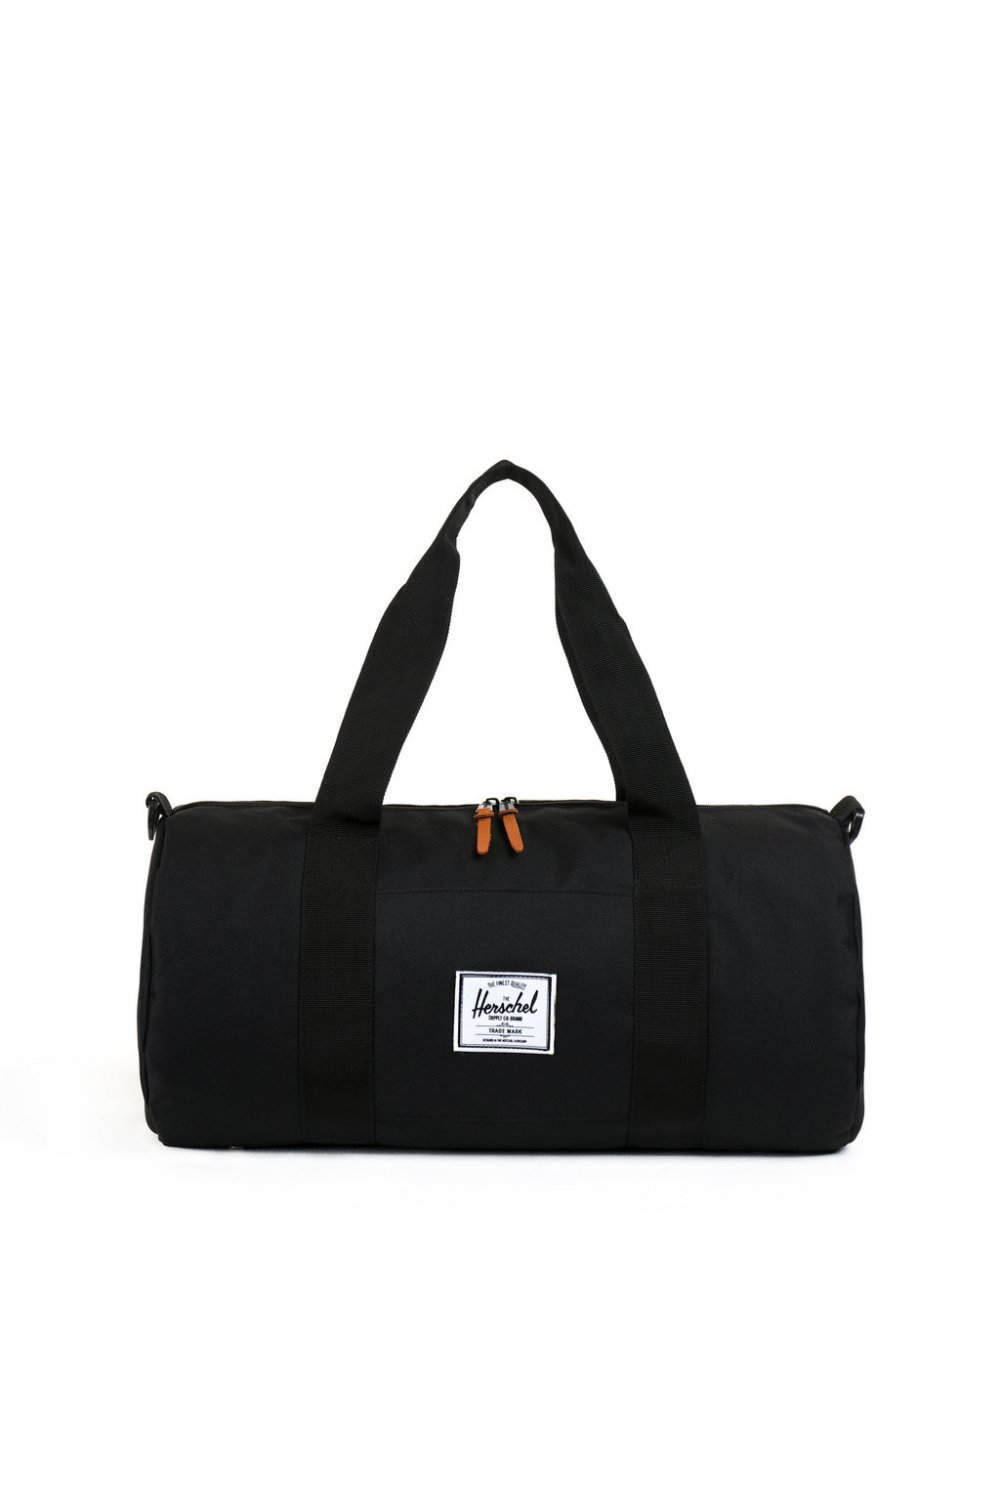 Herschel Duffle Bag | Backpacks Herschel | Herschel Duffle Bag Novel